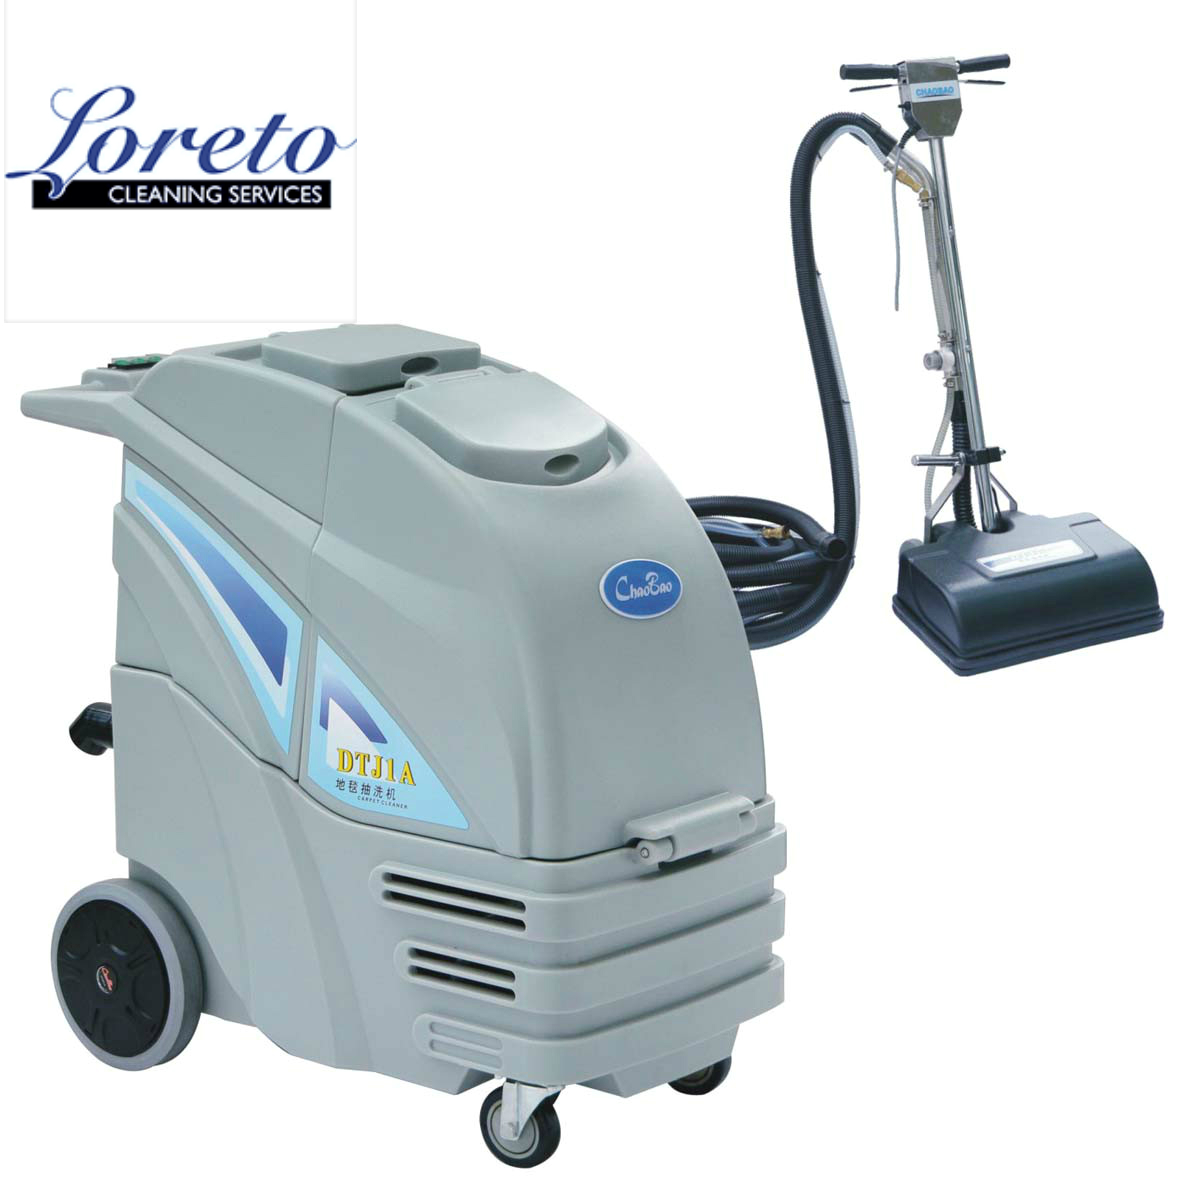 Where Can I Hire A Carpet Cleaning Machine In Cape Town